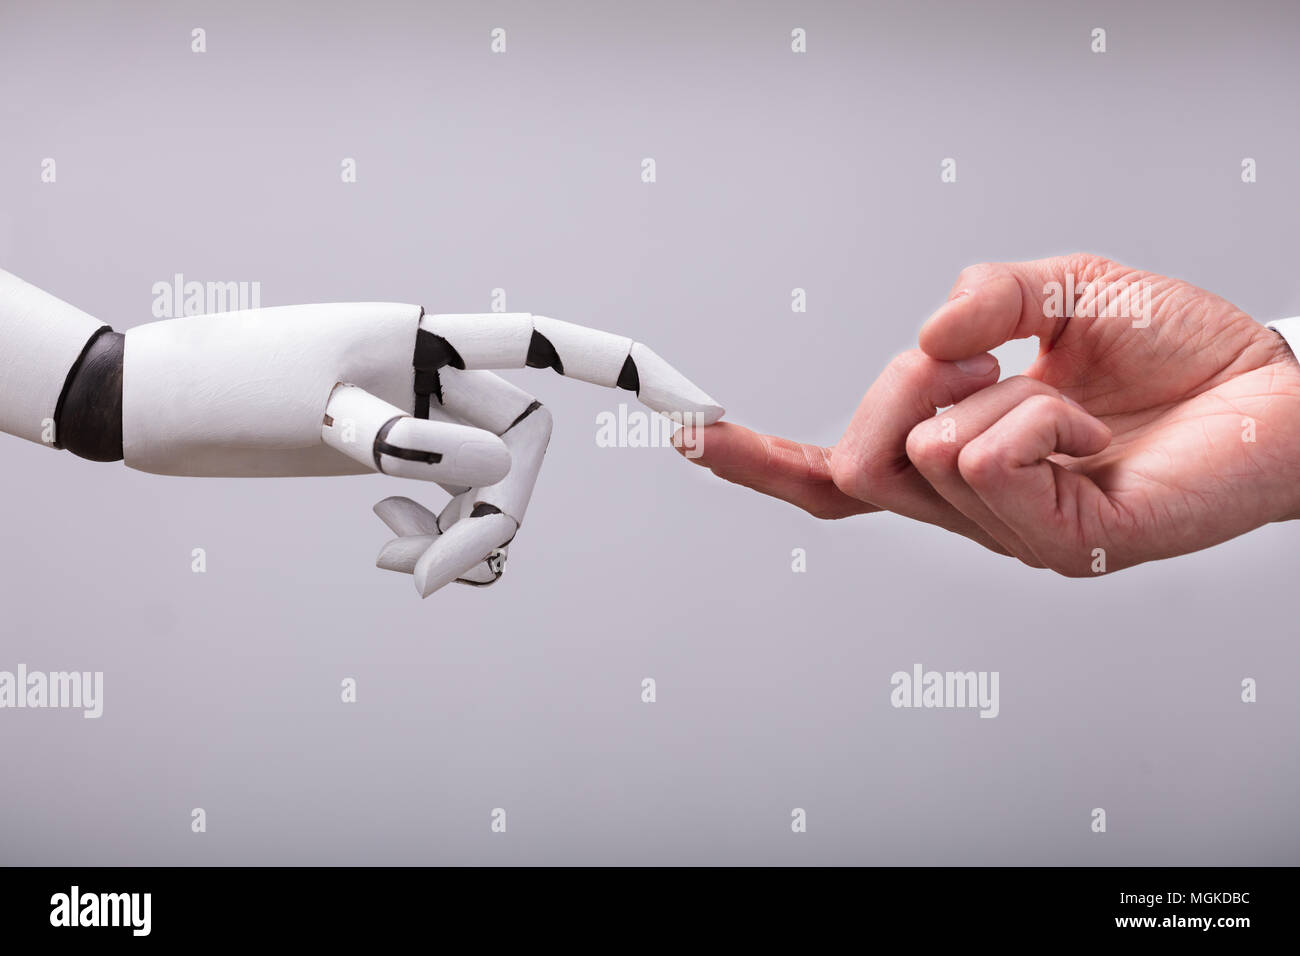 Robot Touching Human Finger Against Gray Background - Stock Image